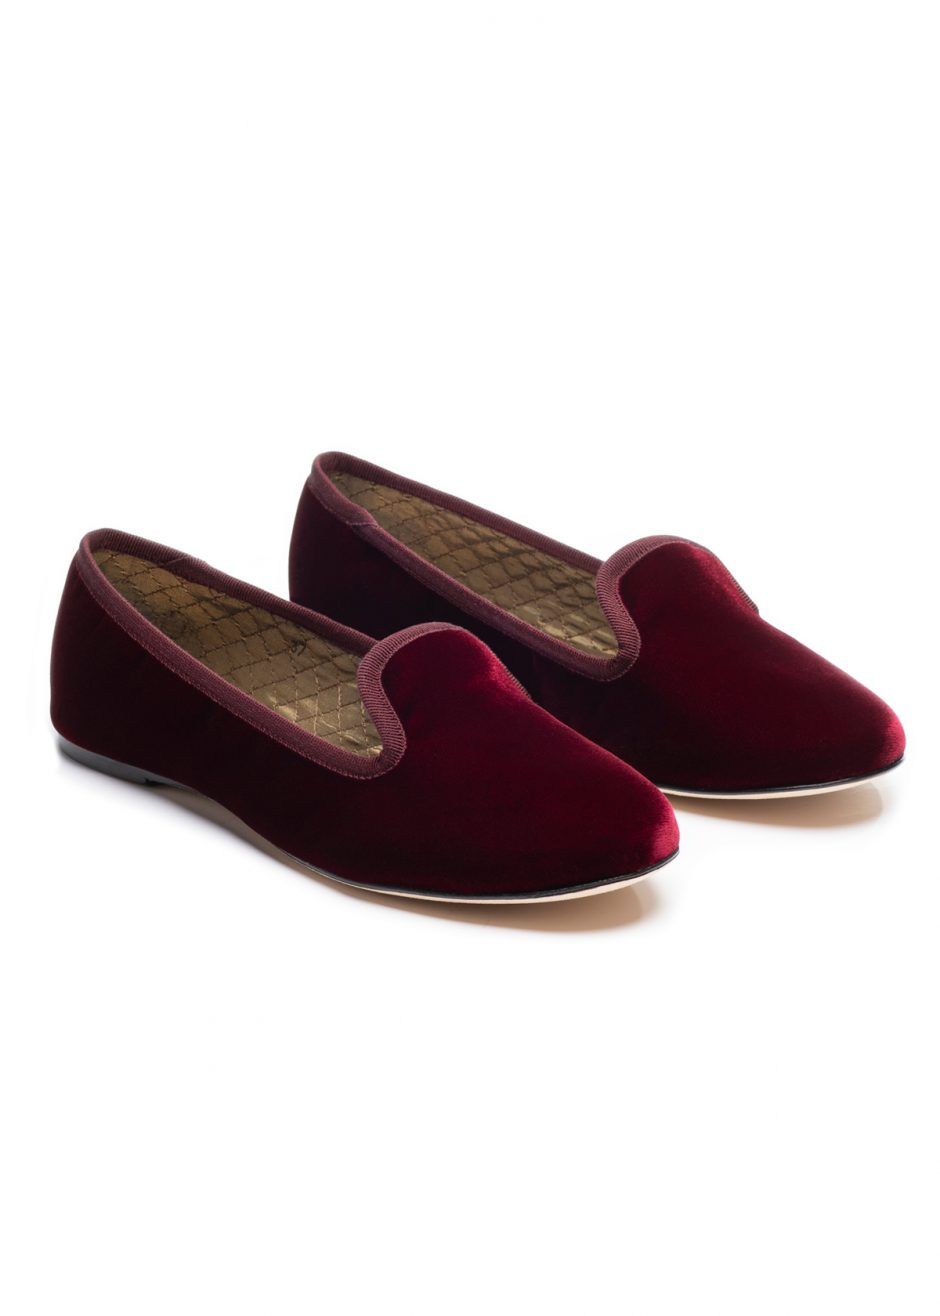 Casanova – Slipper velluto bordeaux